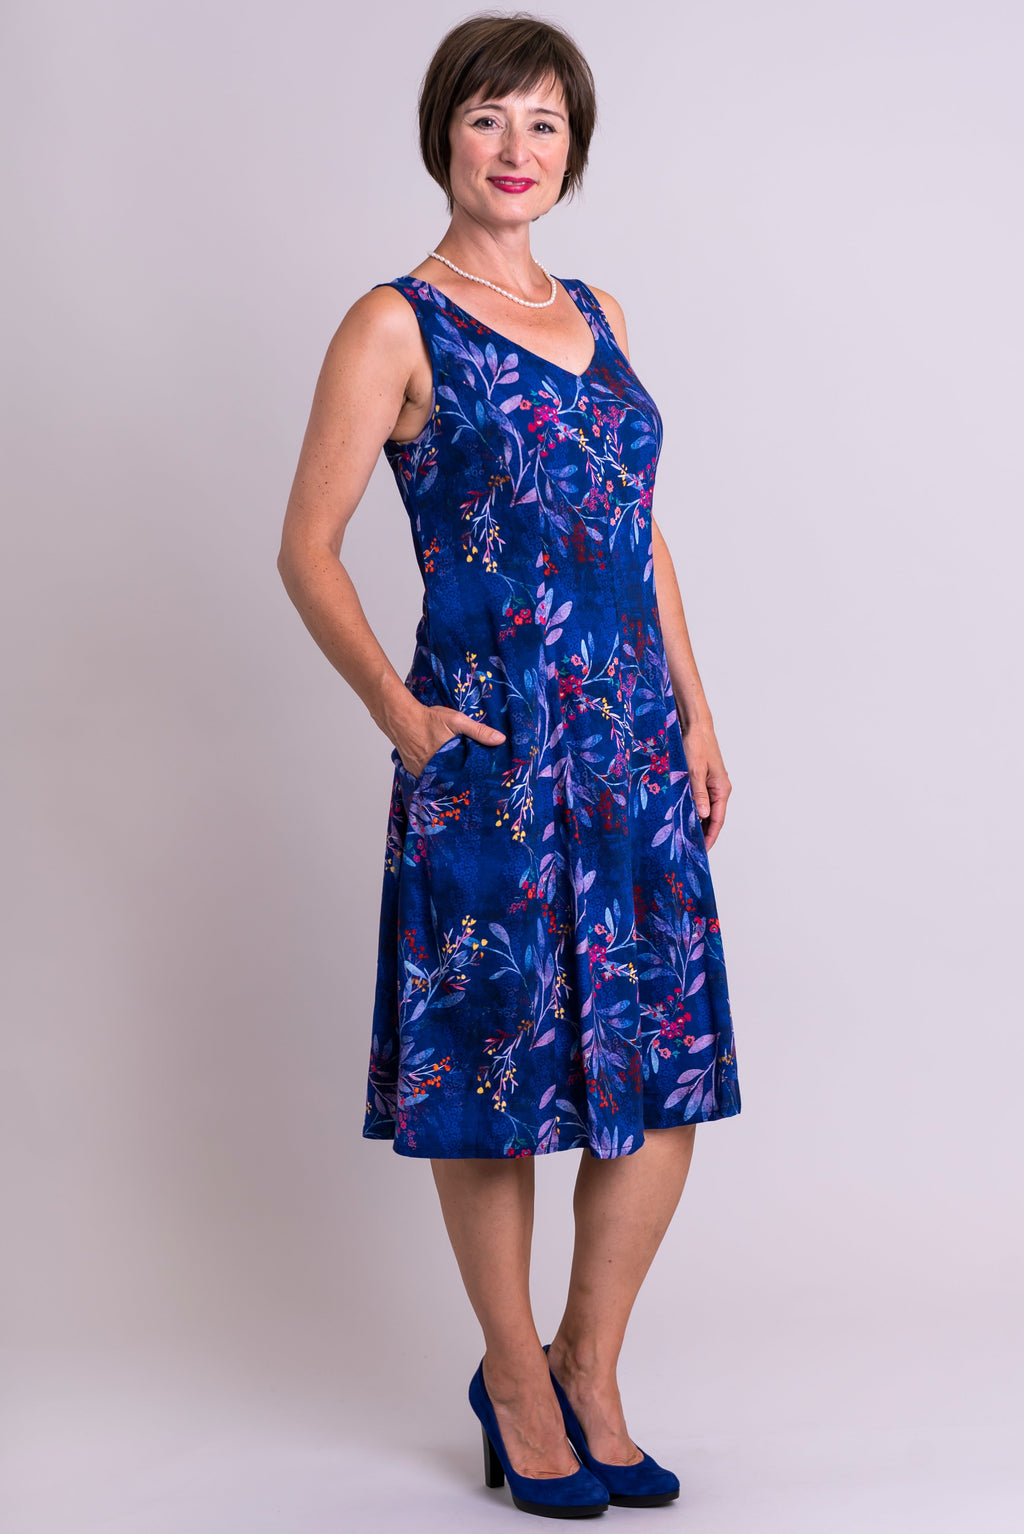 Odette Dress, Violetta, Linen Bamboo - Blue Sky Clothing Co